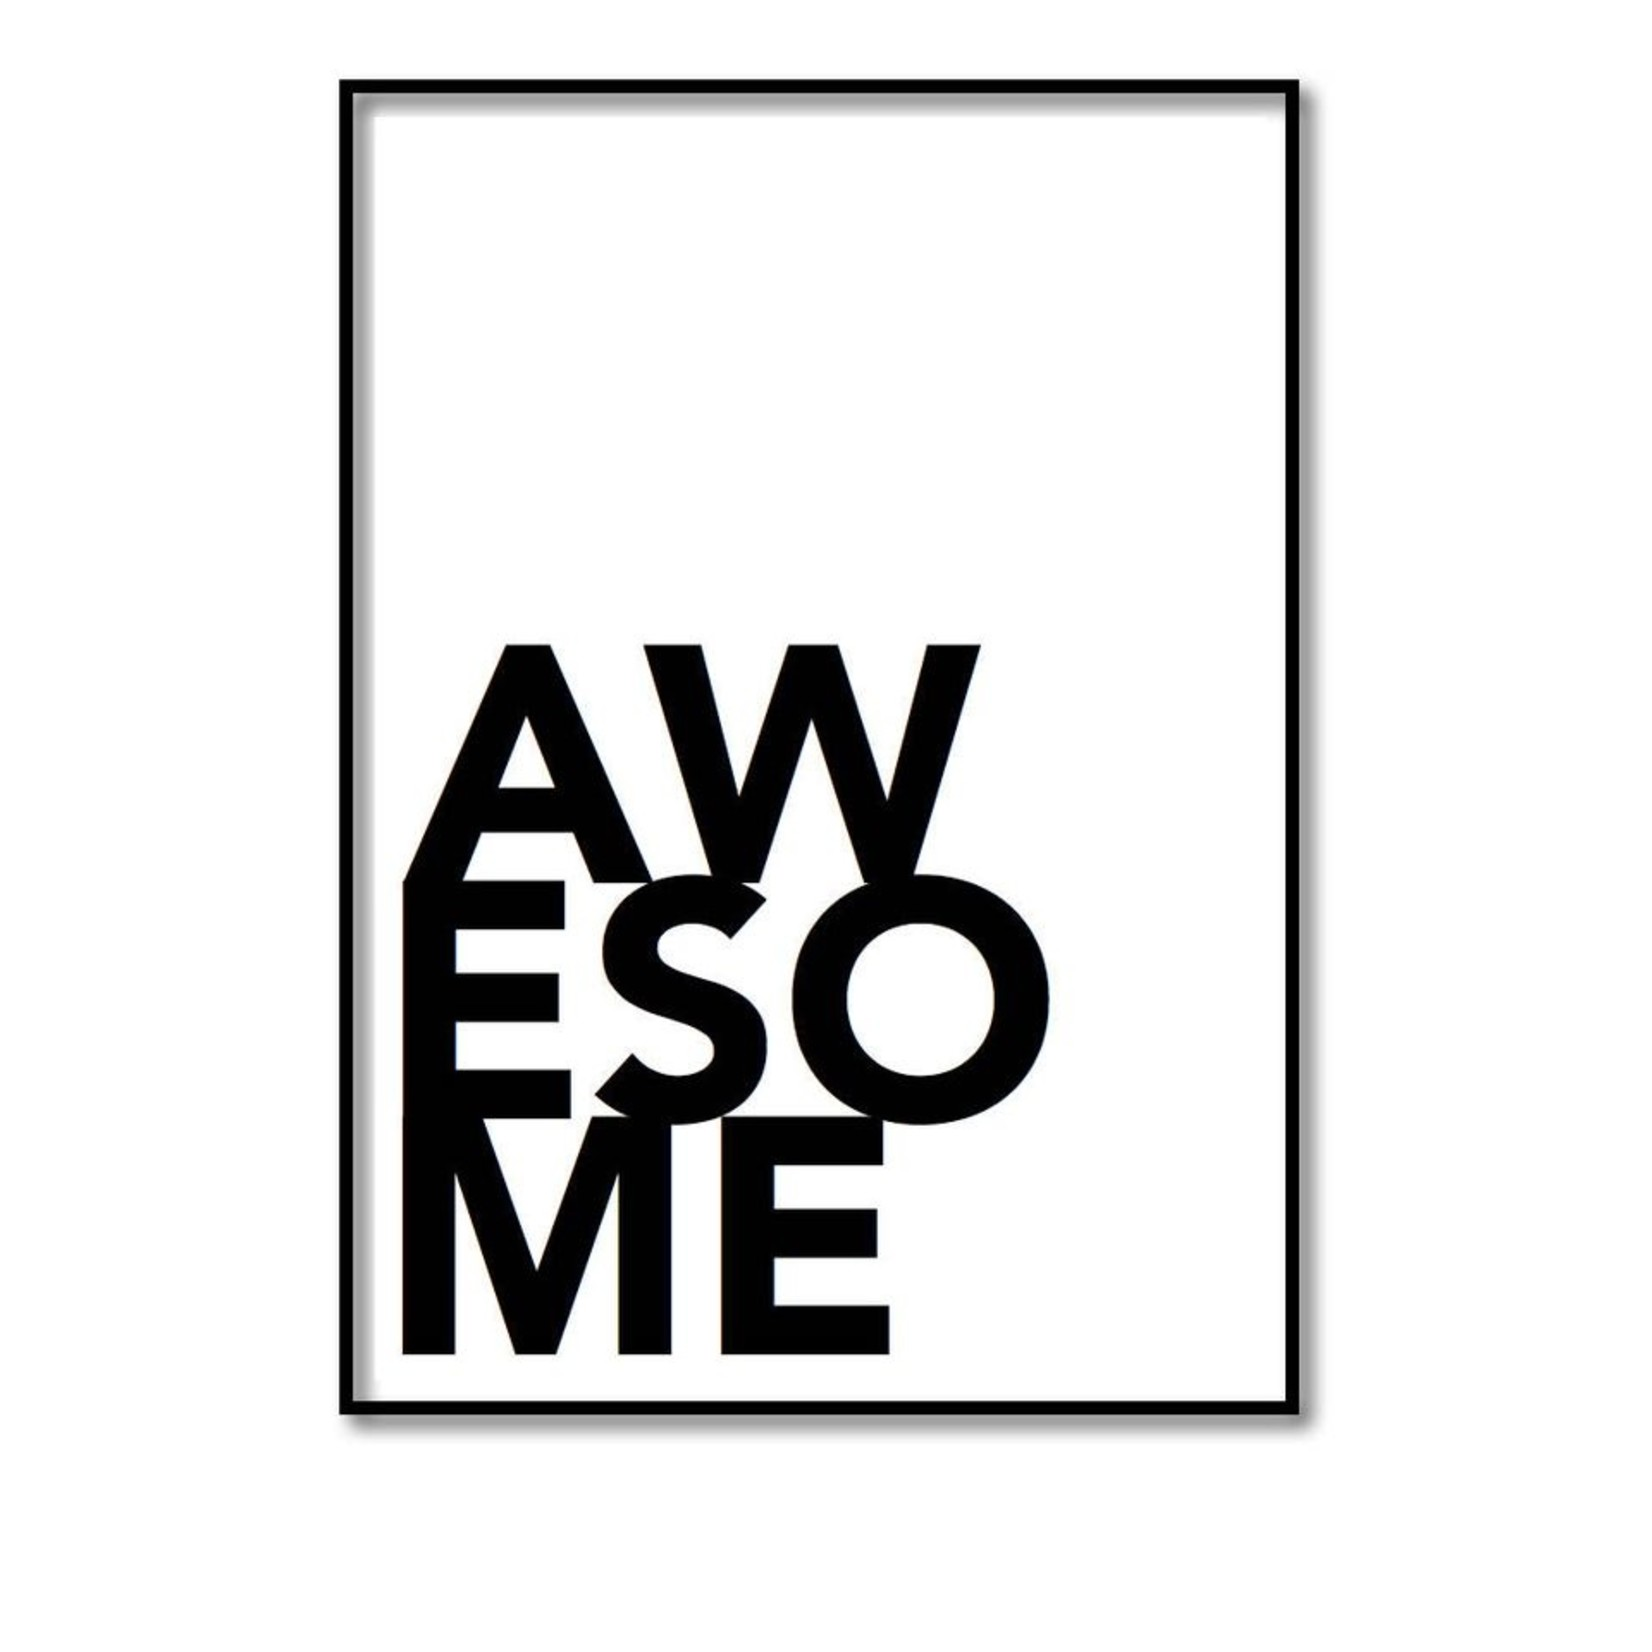 Pixelposter - Awesome (A5)